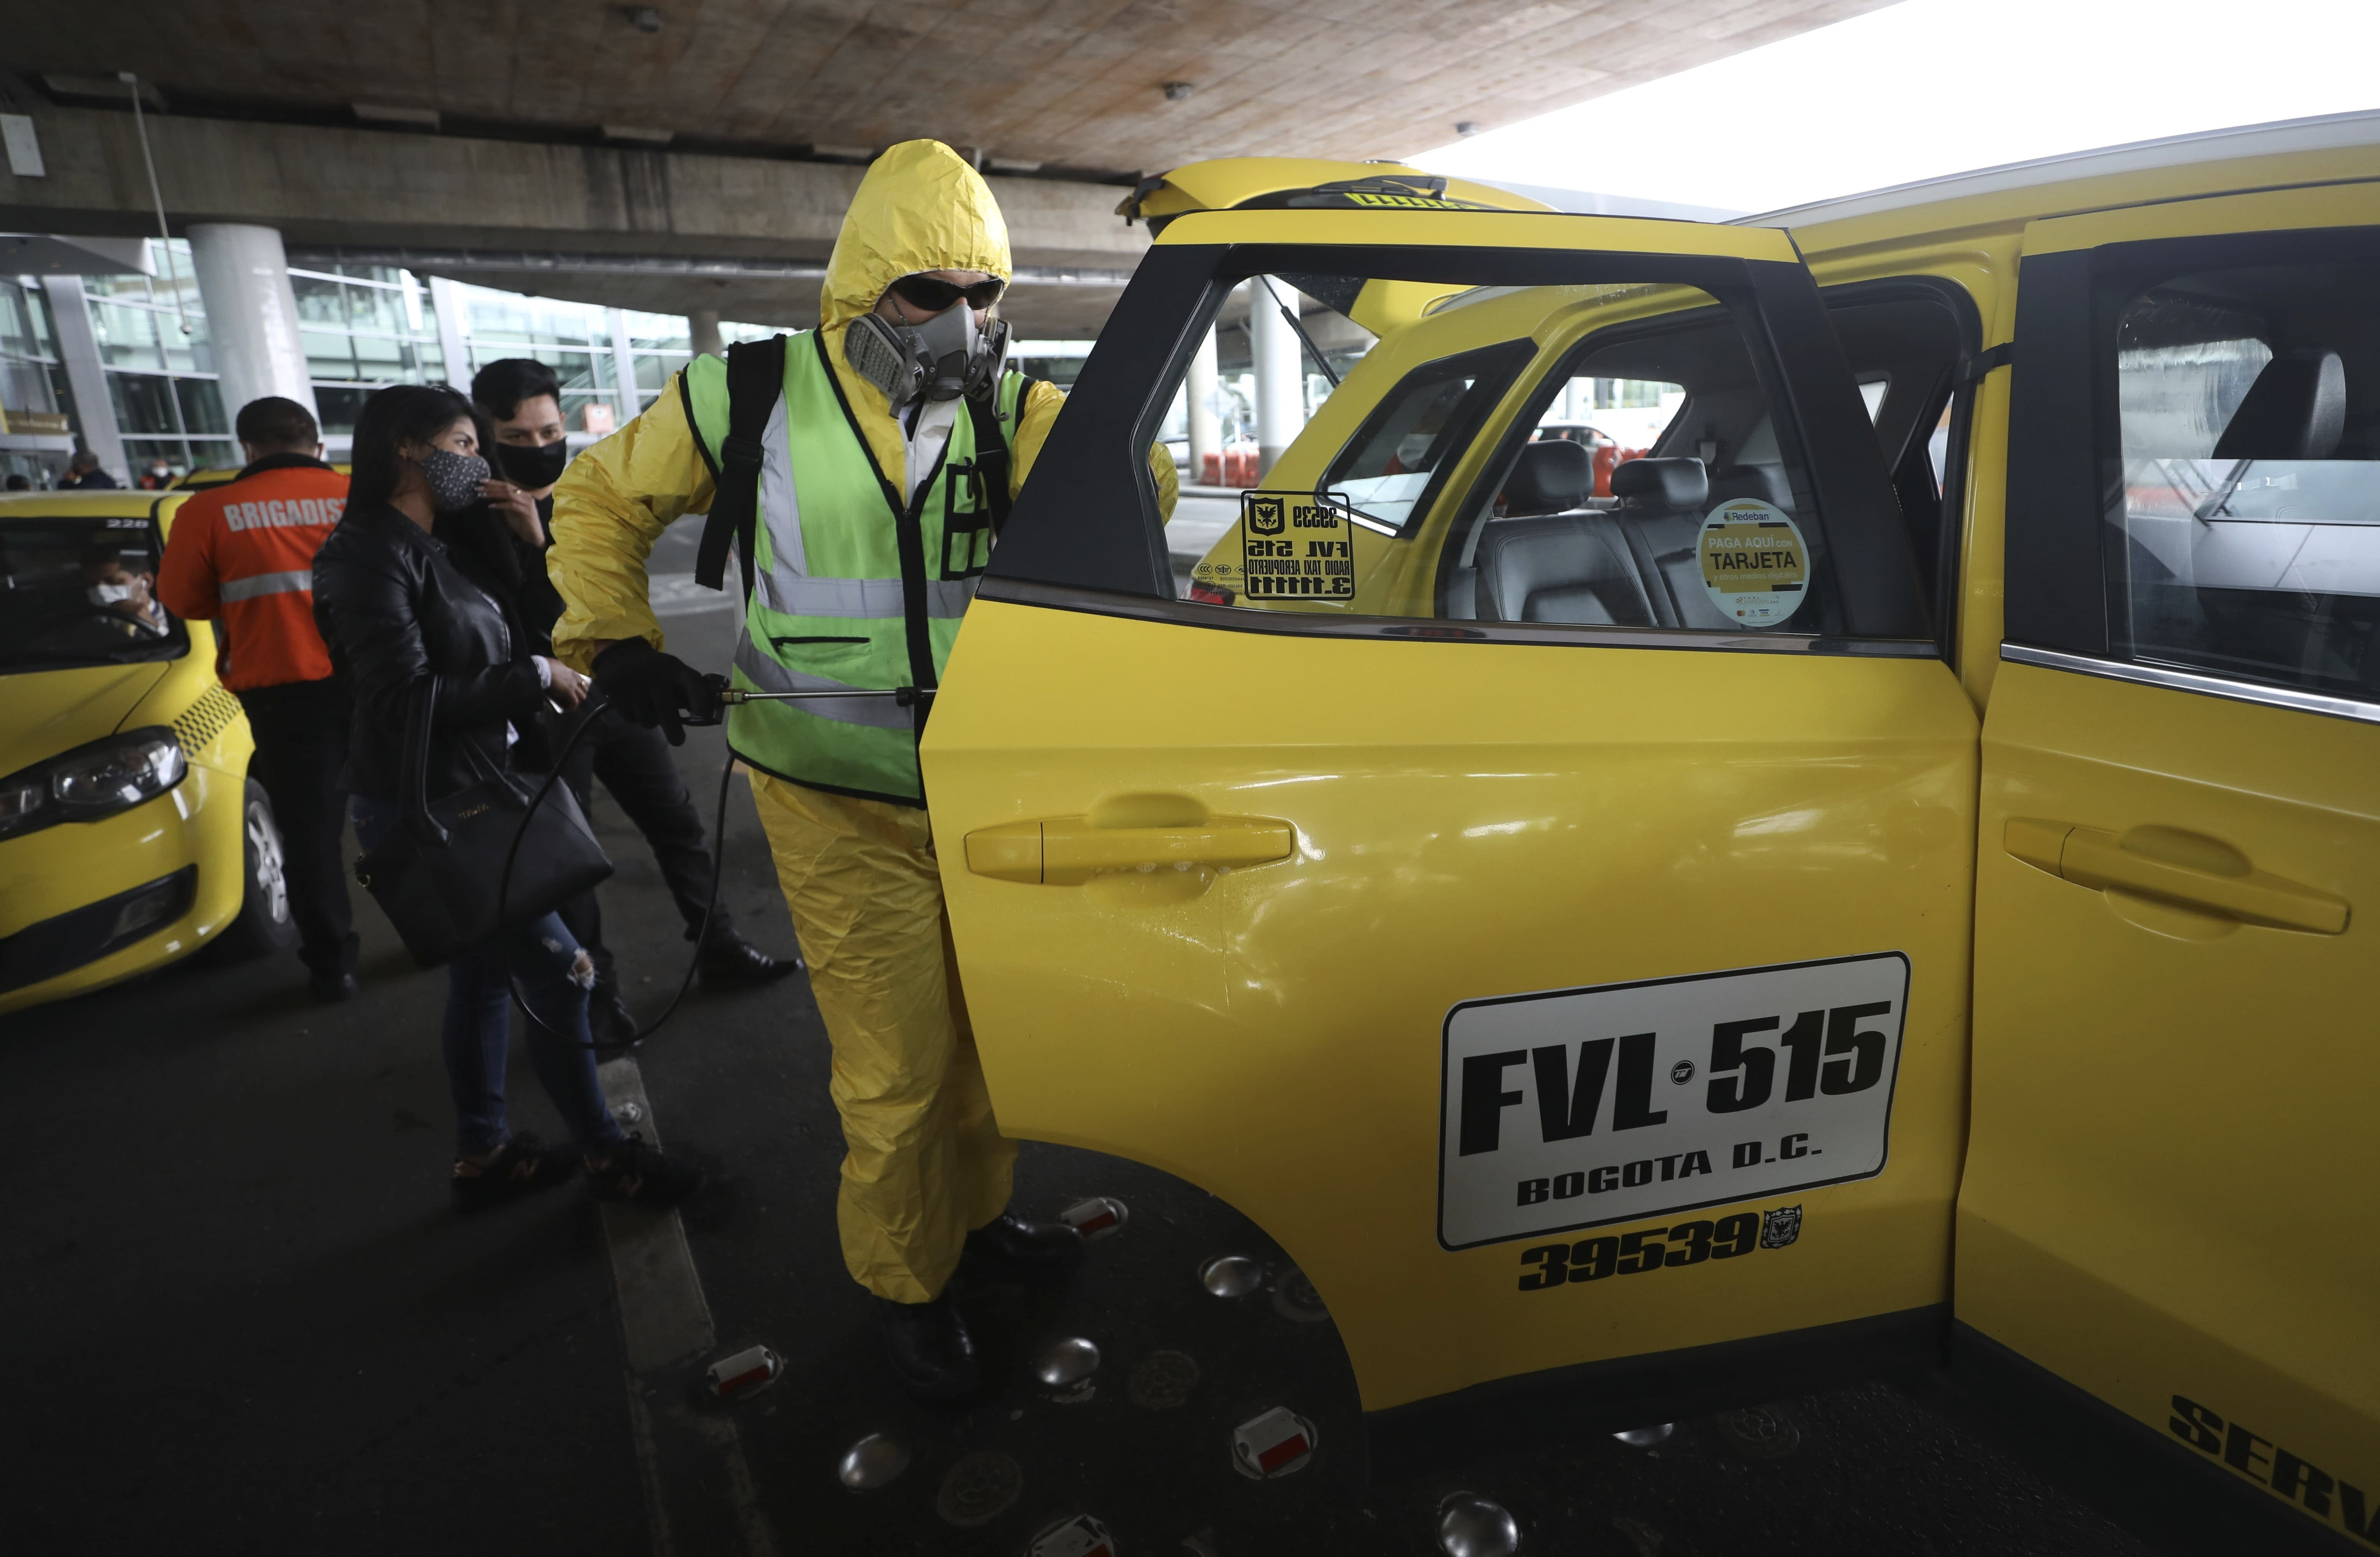 A worker disinfects a taxi for travelers arriving to El Dorado airport in Bogota, Colombia, Tuesday, Sept. 1, 2020. Airports, land transport, restaurants, and gyms are reopening in most of Colombia this week, as the South American nation attempts to reignite its economy following months of restrictions related to the coronavirus pandemic. (AP Photo/Fernando Vergara)